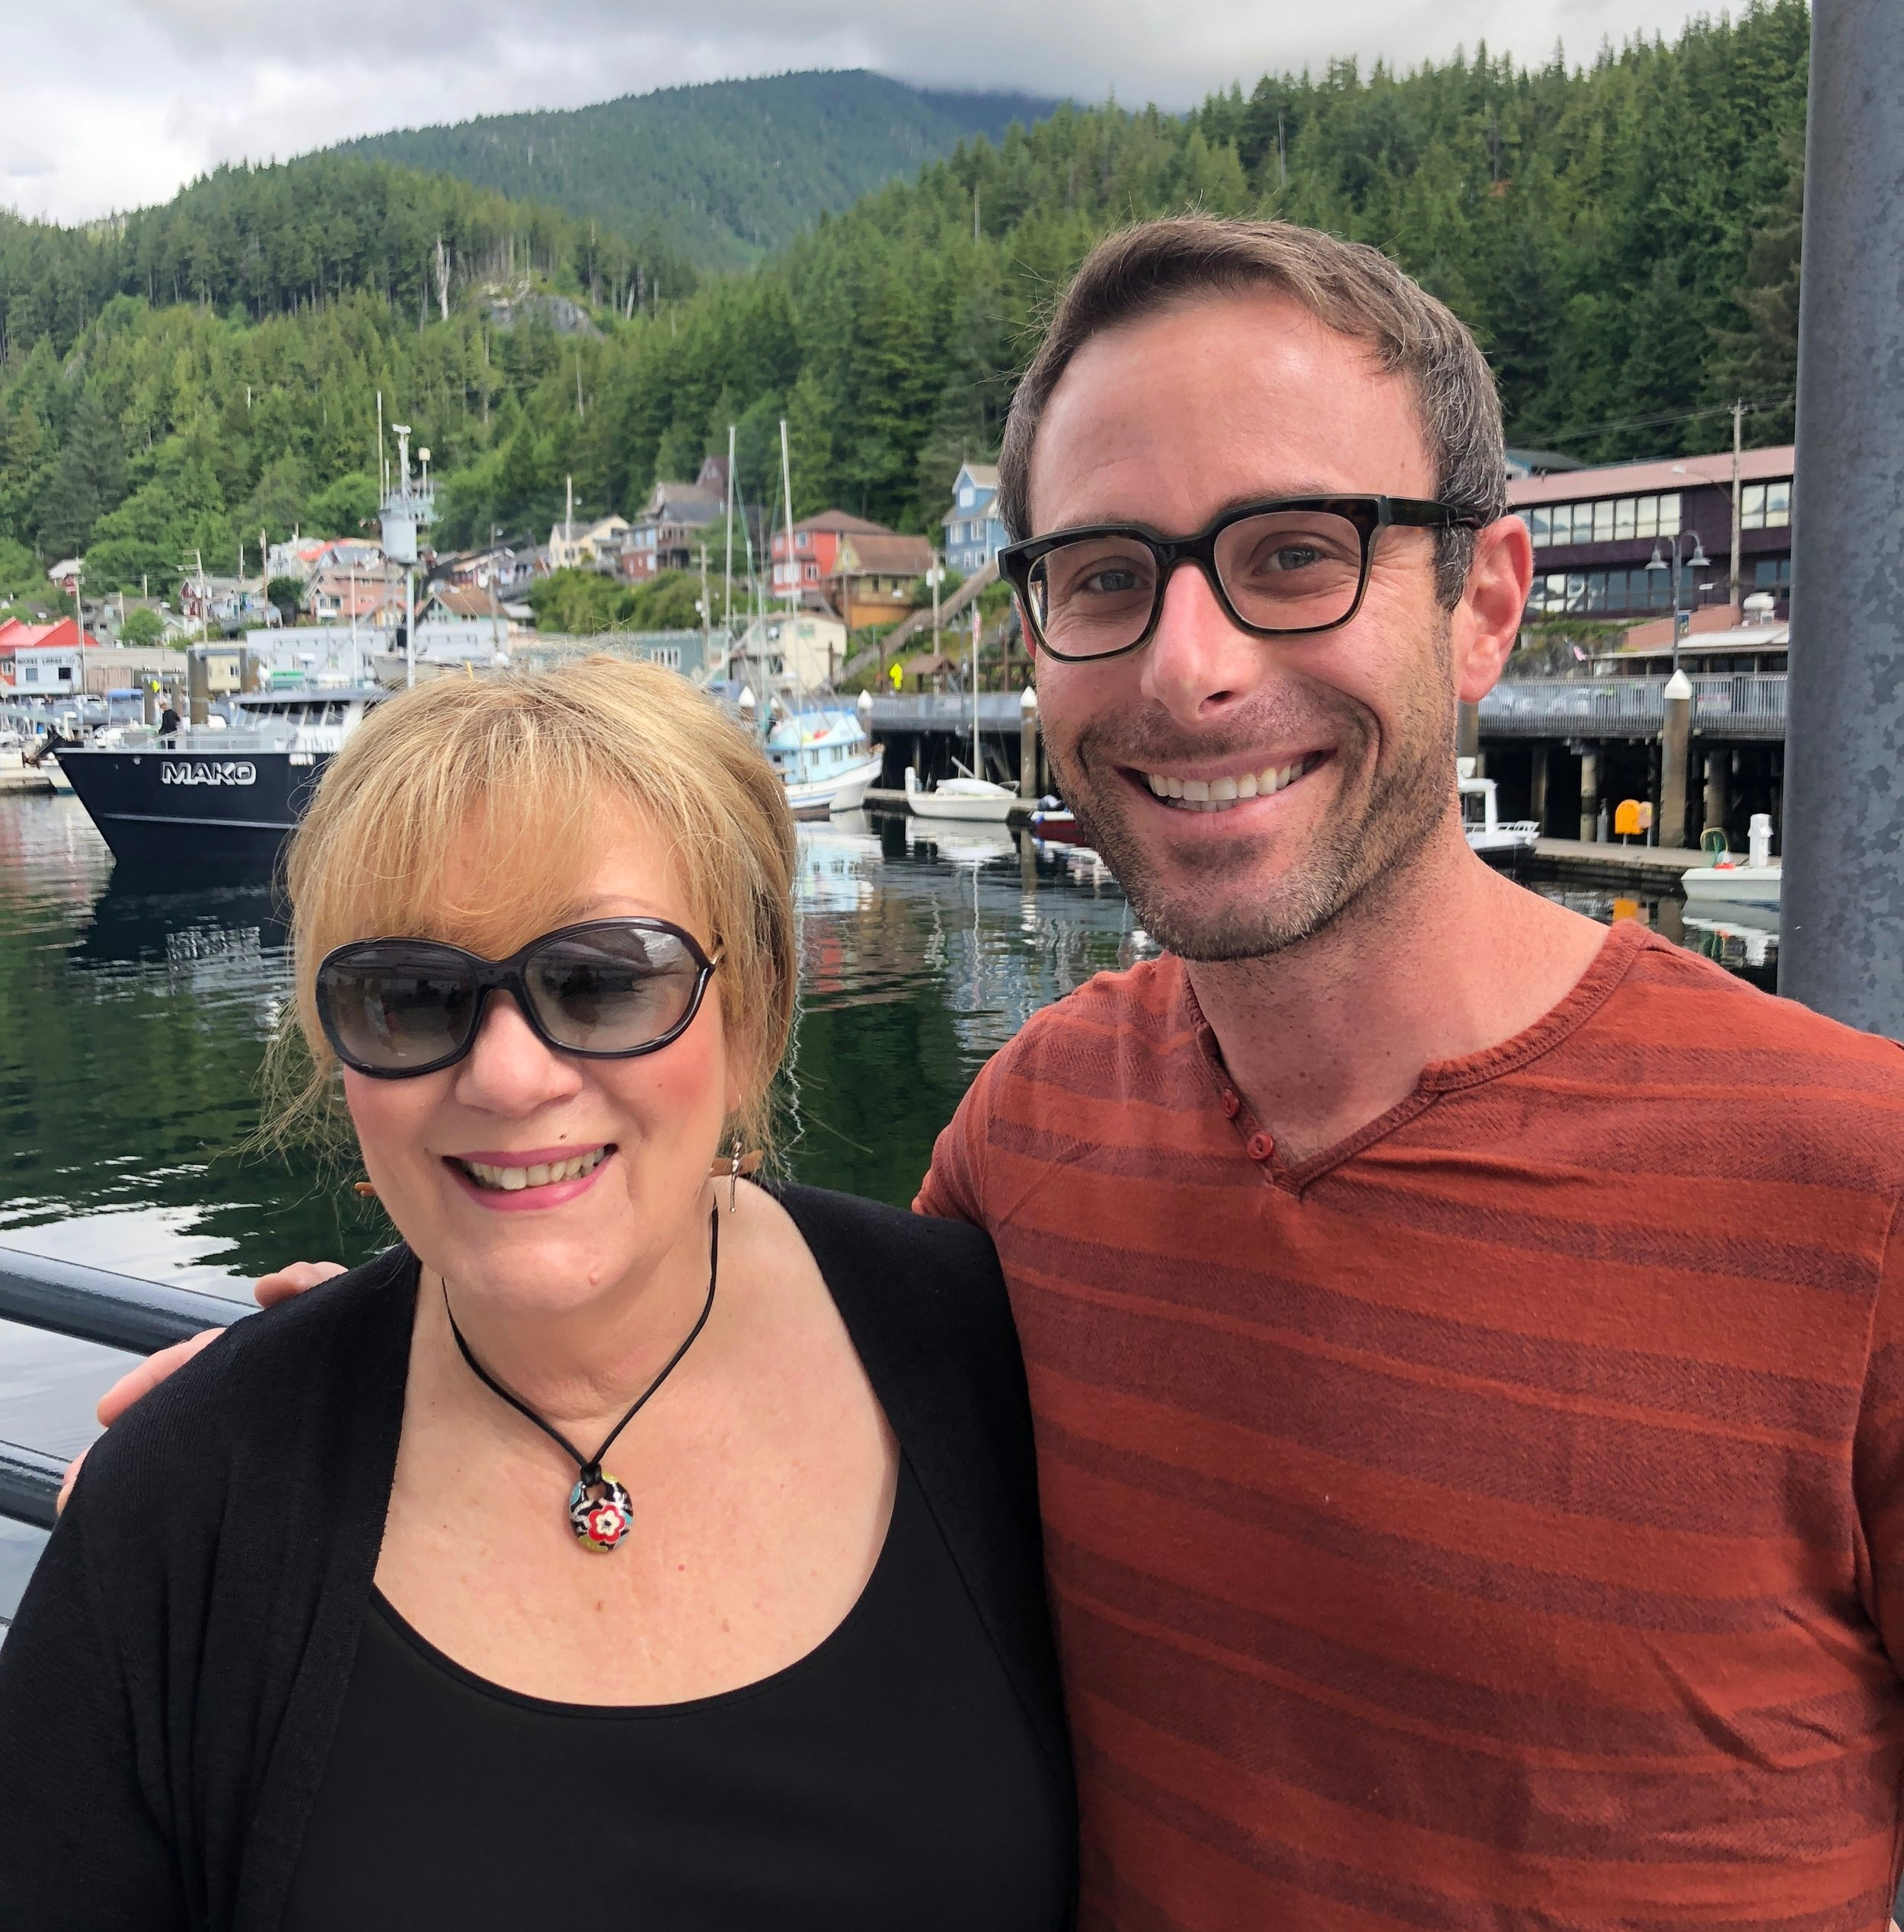 Ester Hicks and Christian at the Abraham Hicks Vortex of Attraction Cruise. July '18 Skagway, AK